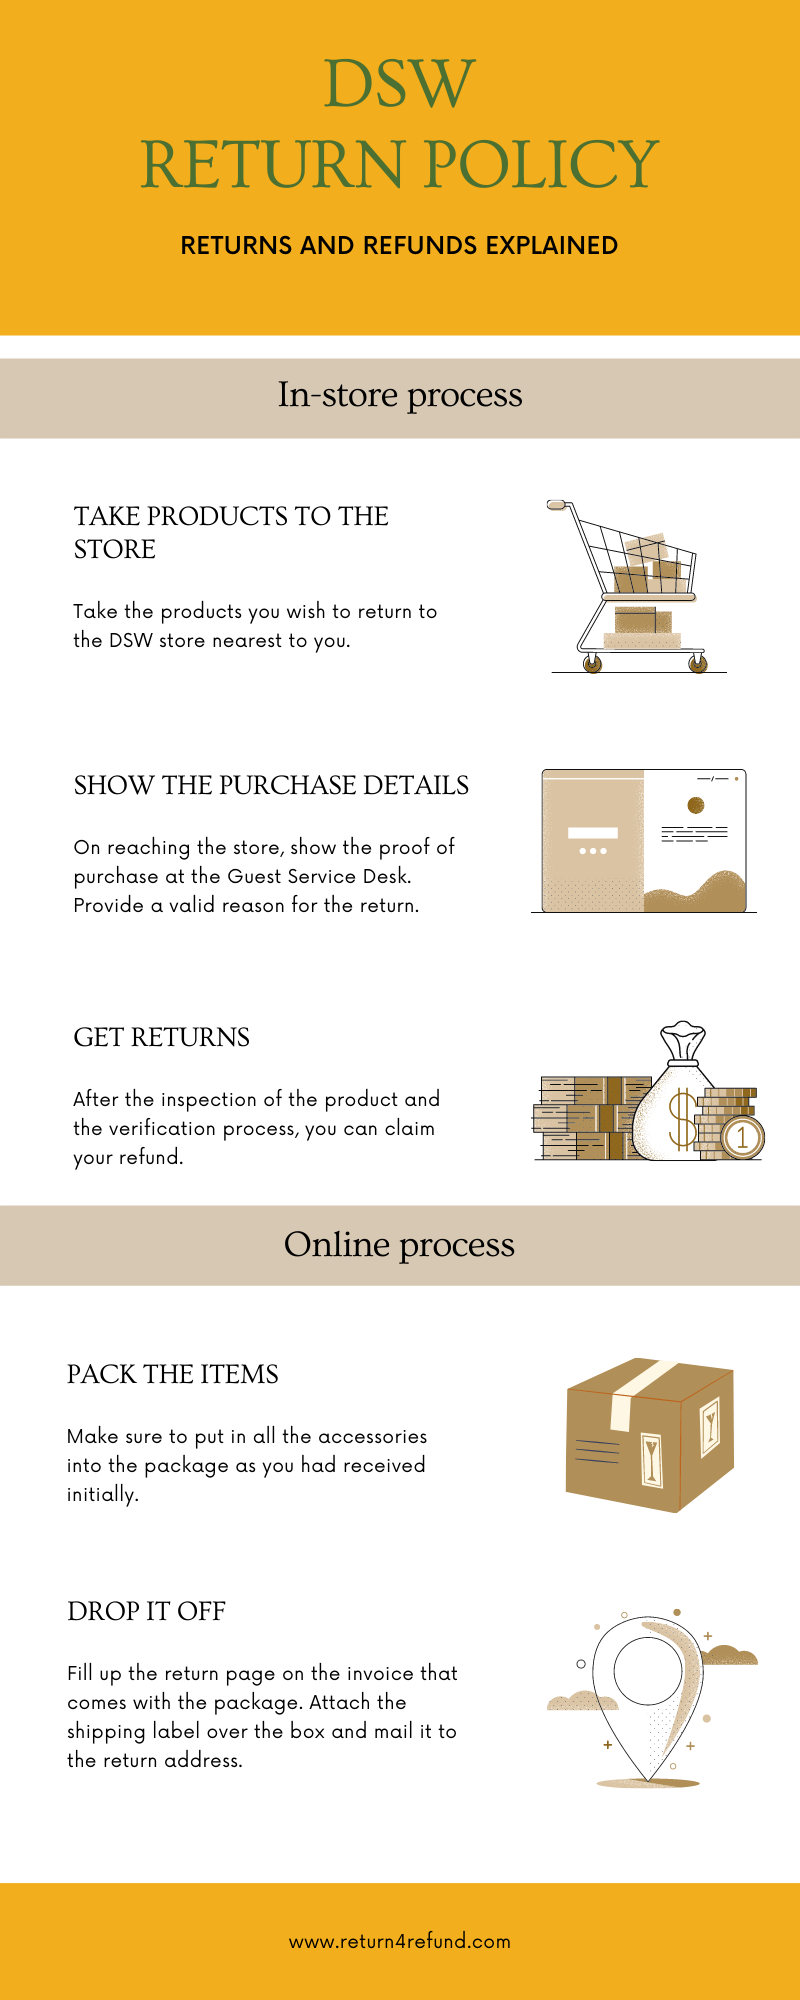 DSW Return Policy infographic